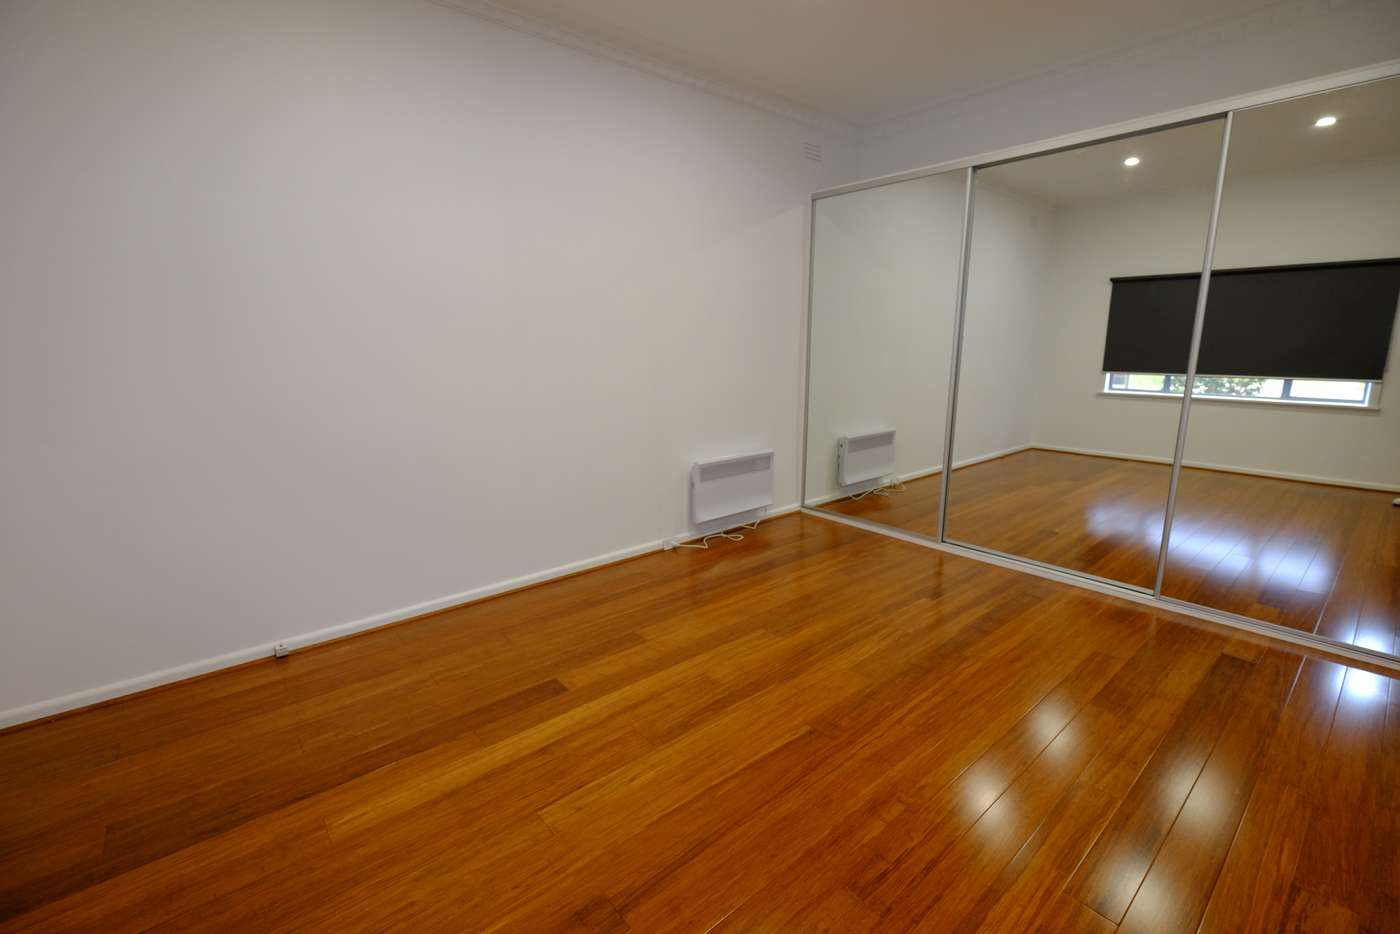 Seventh view of Homely house listing, 42 Harold Street, Thornbury VIC 3071